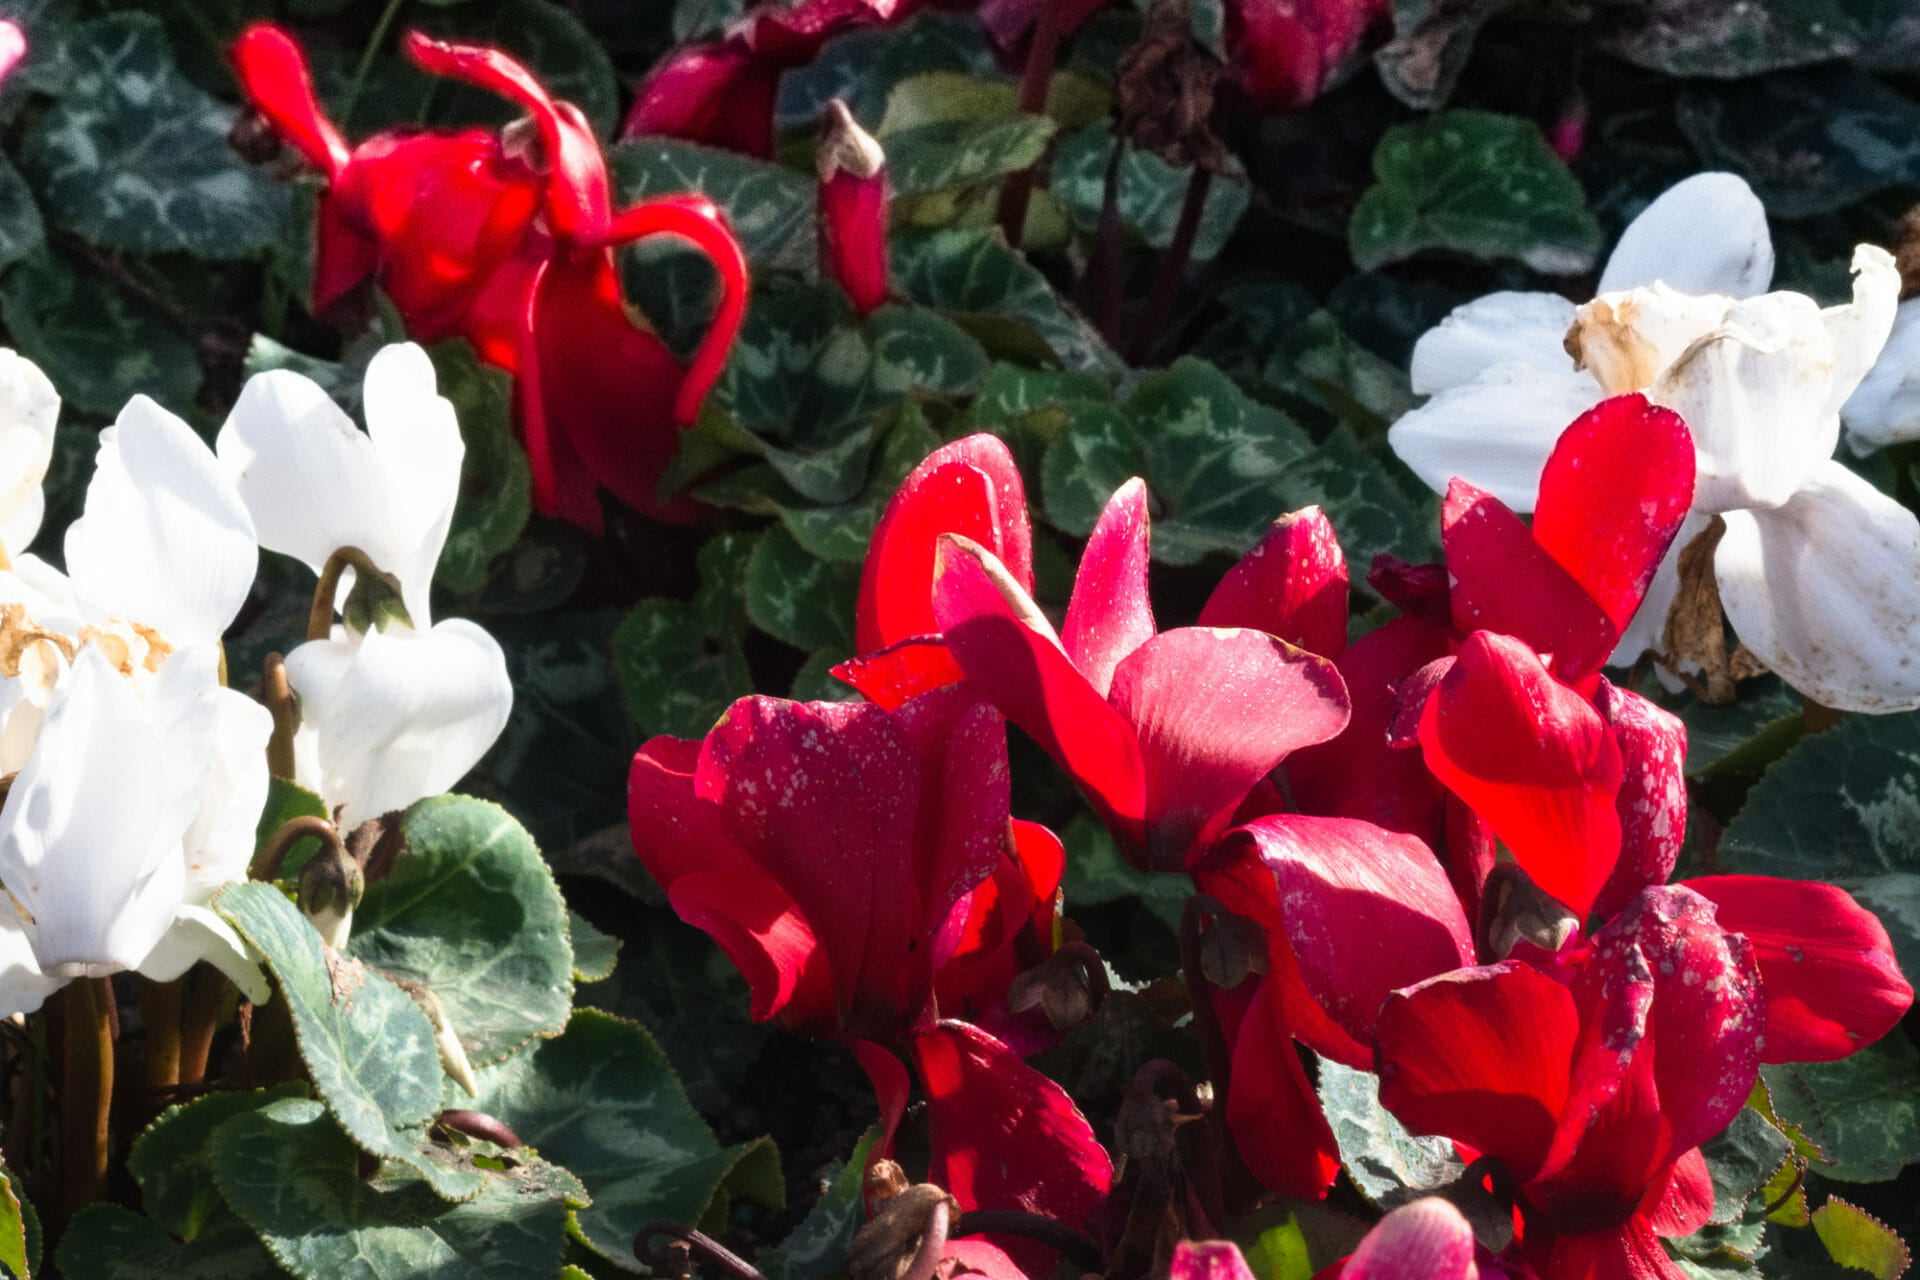 Red and white - lovely sight in La Costa